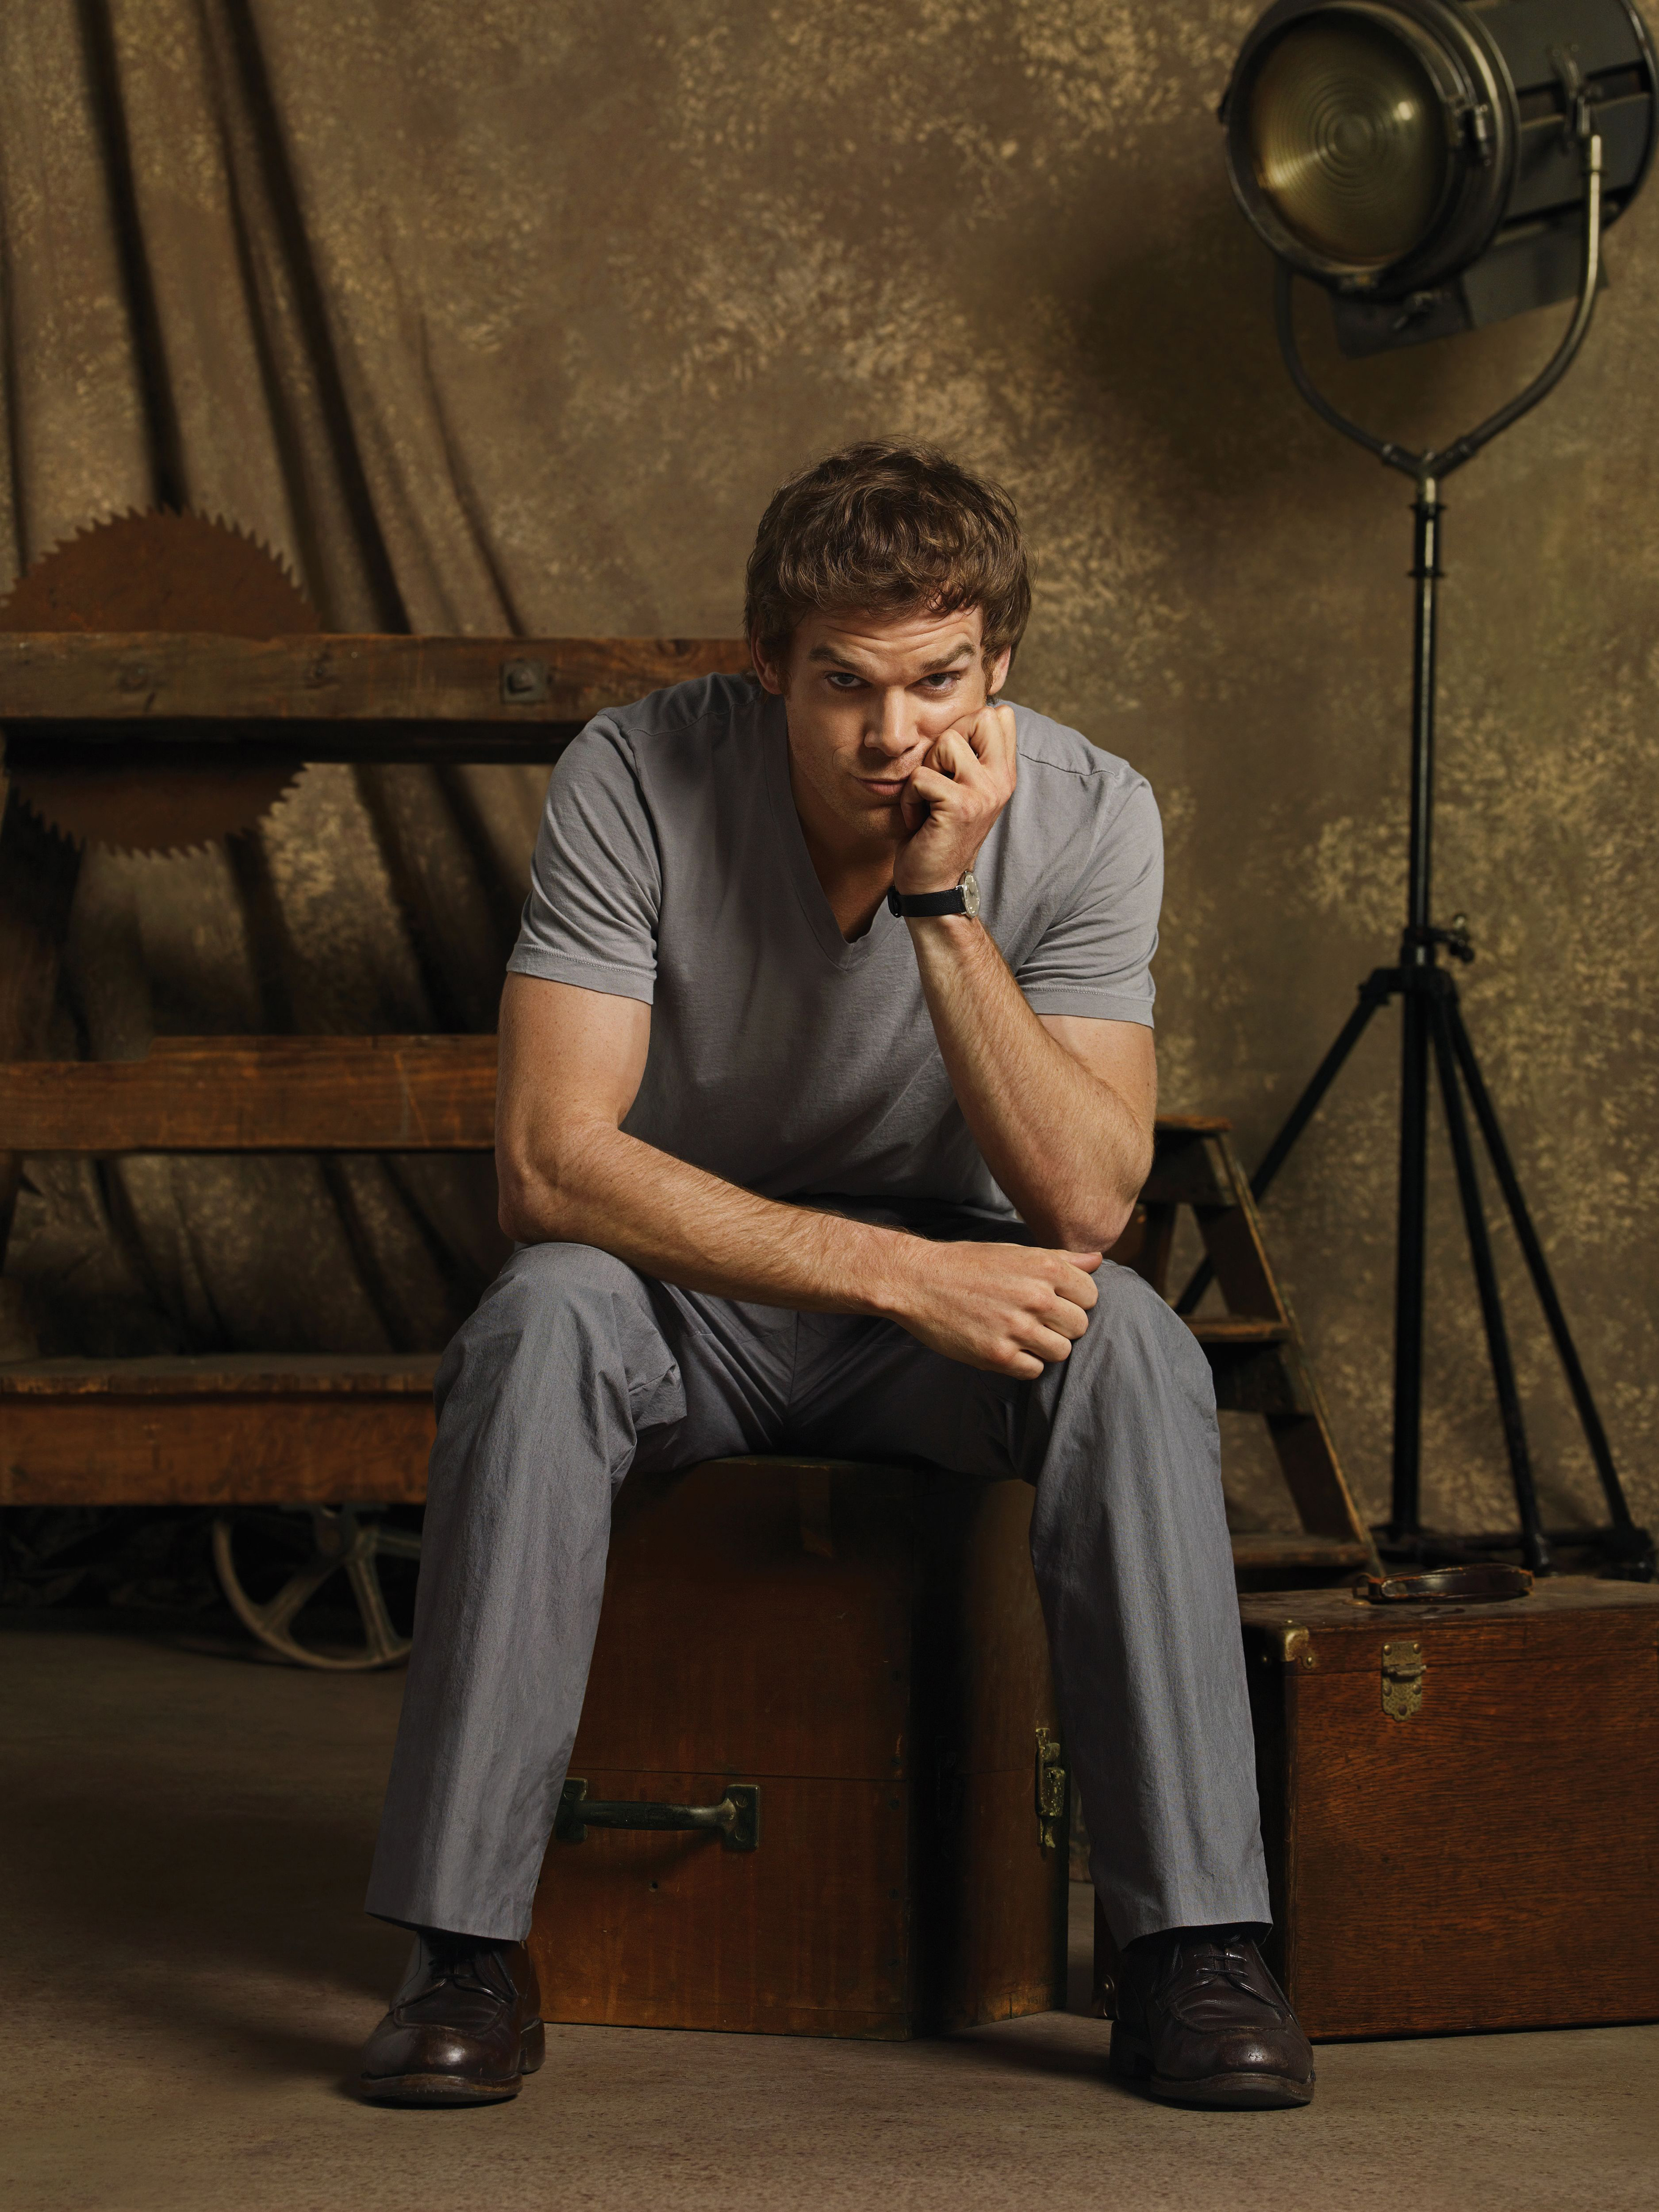 the double life of dexter morgan Dexter(tm) is a crime drama about dexter morgan, a man who leads a double life as an incredibly likeable forensics expert for the miami police department and as an emotionless vigilante.